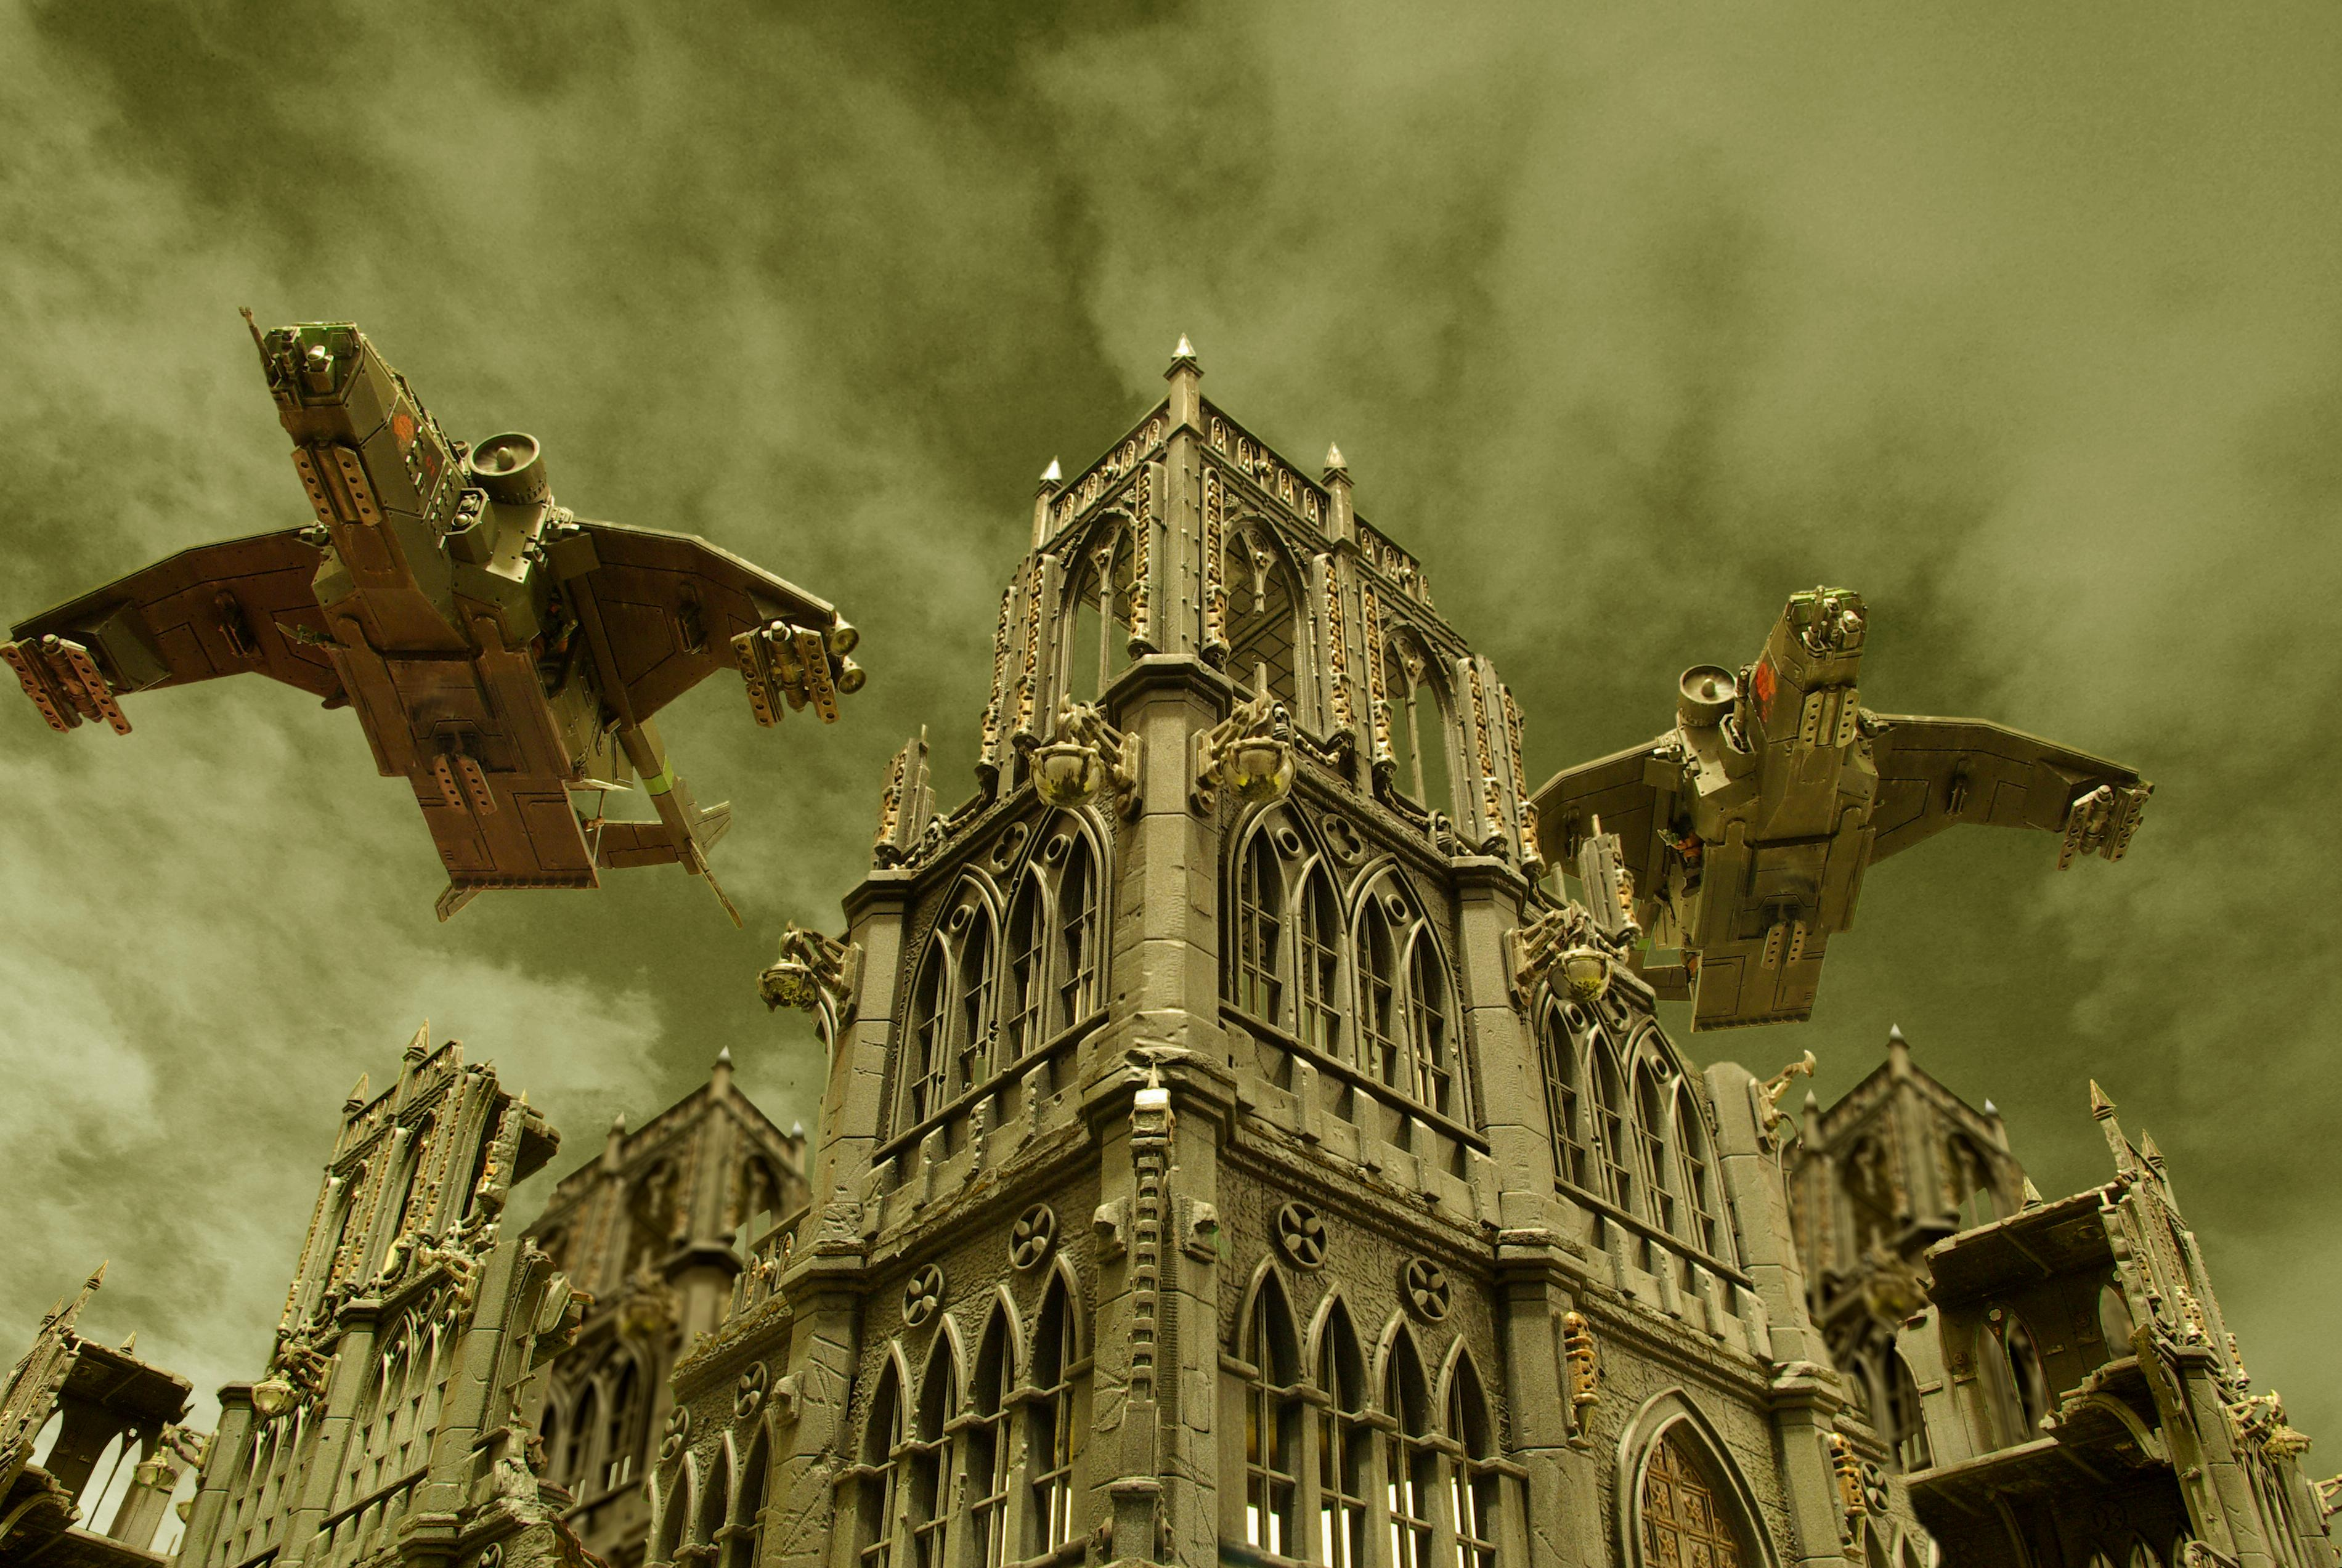 Action, Awesome, Imperial Guard, Pegasus, Photoshop, Valkyrie